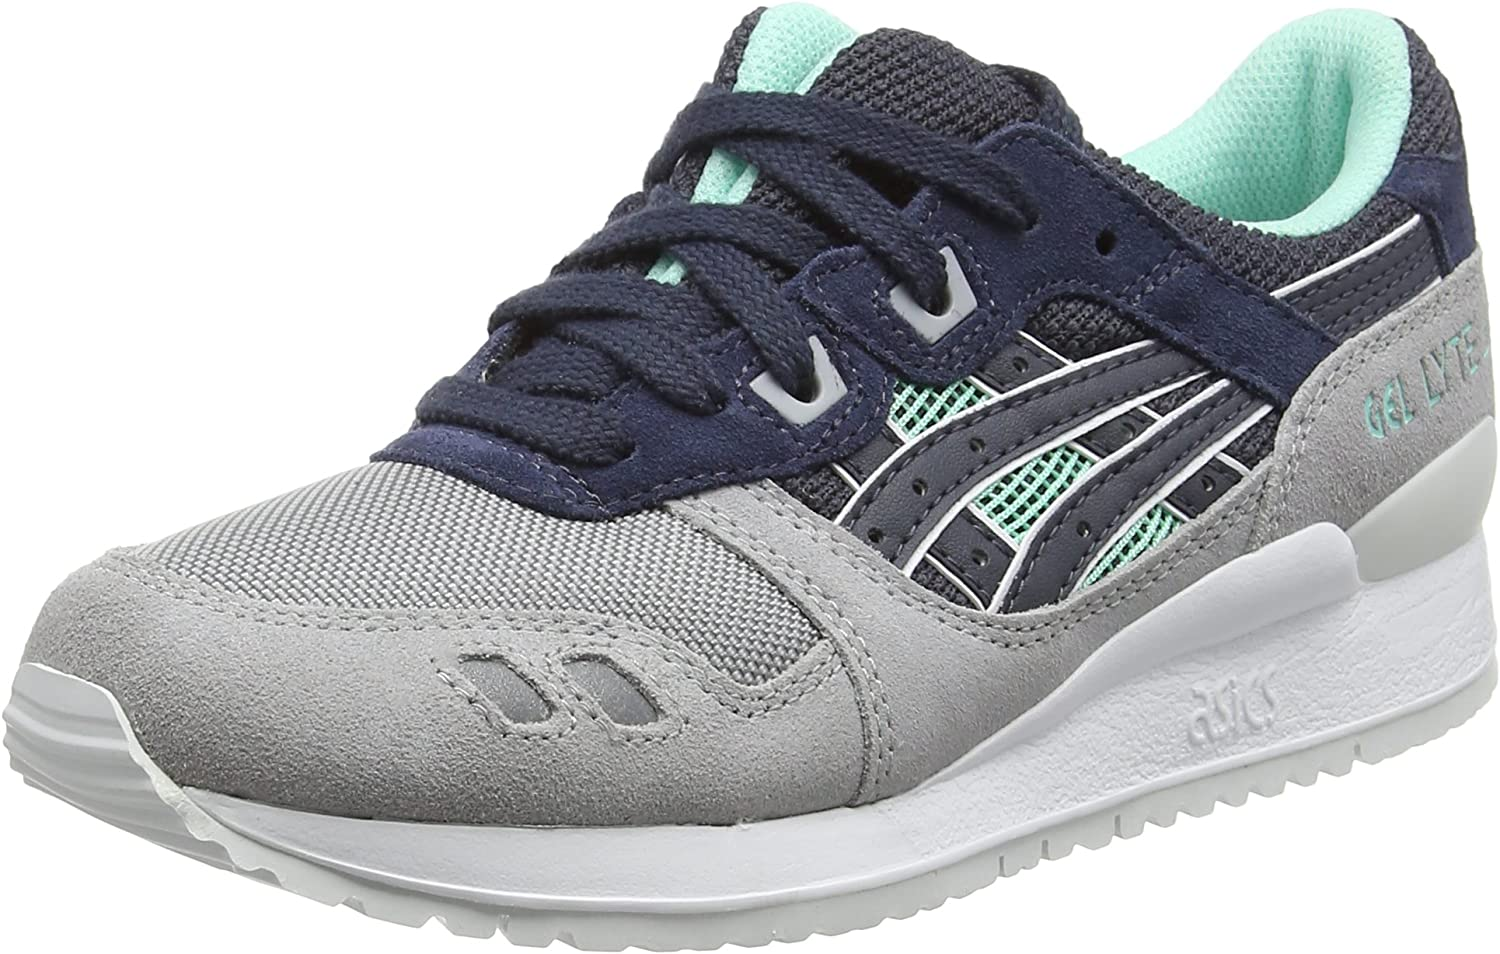 ASICS Gel-Lyte III Mens Running Trainers H6X2L Sneakers shoes Navy